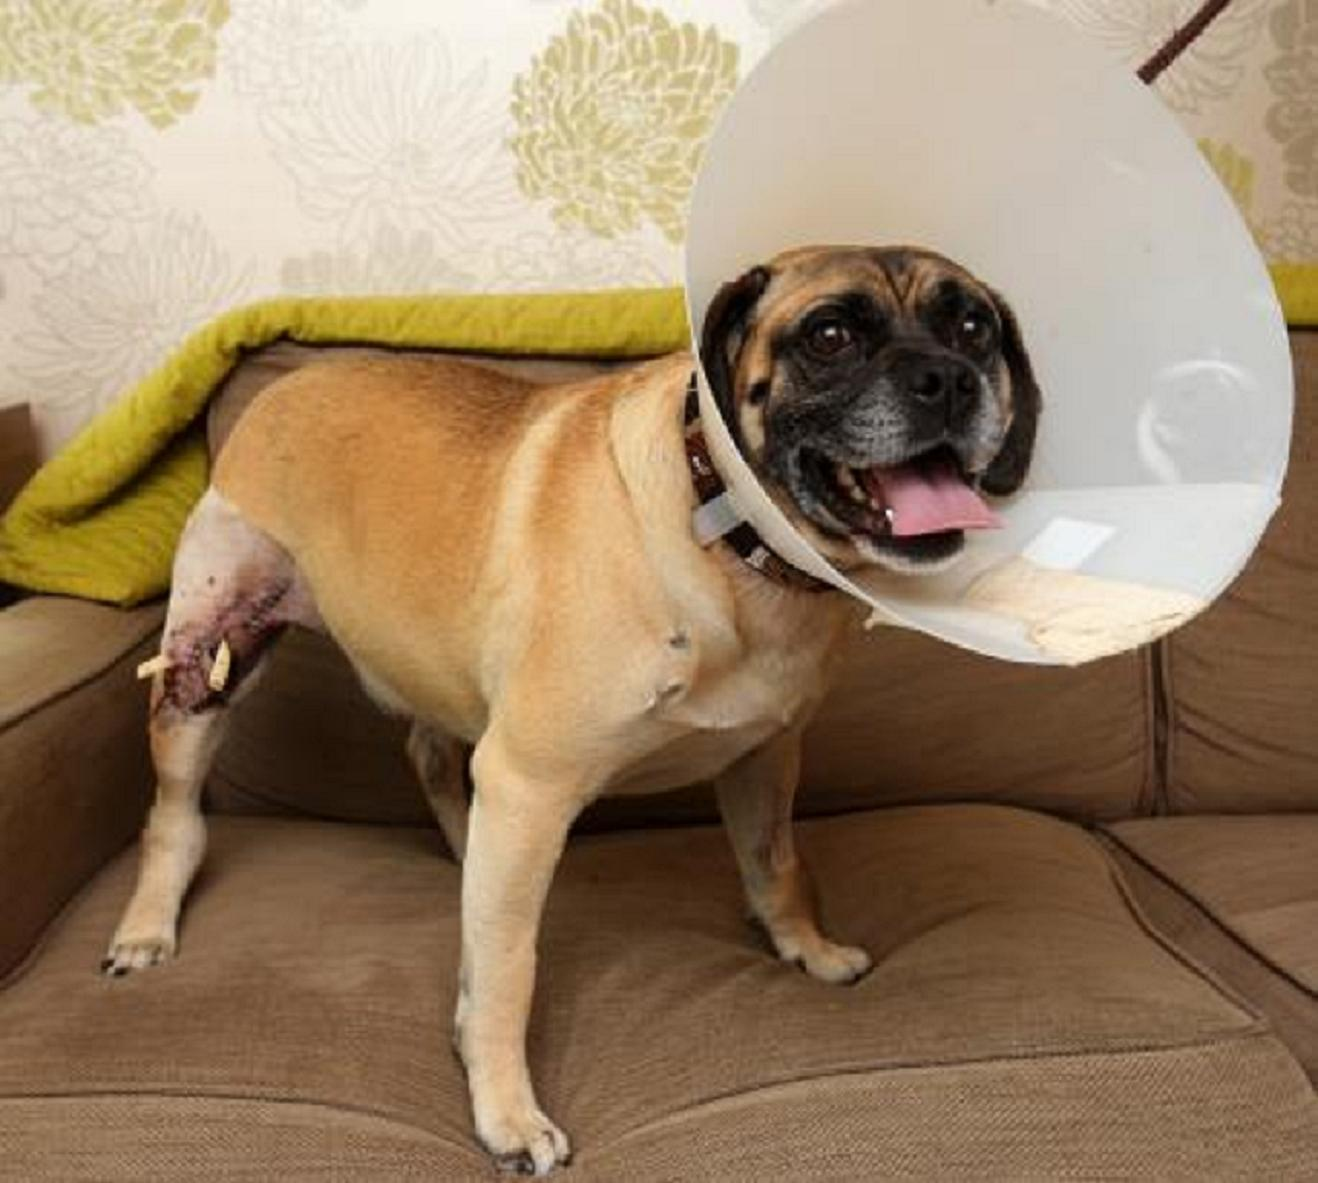 Henry, a puggle, needed 147 stitches after being attacked by a bulldog